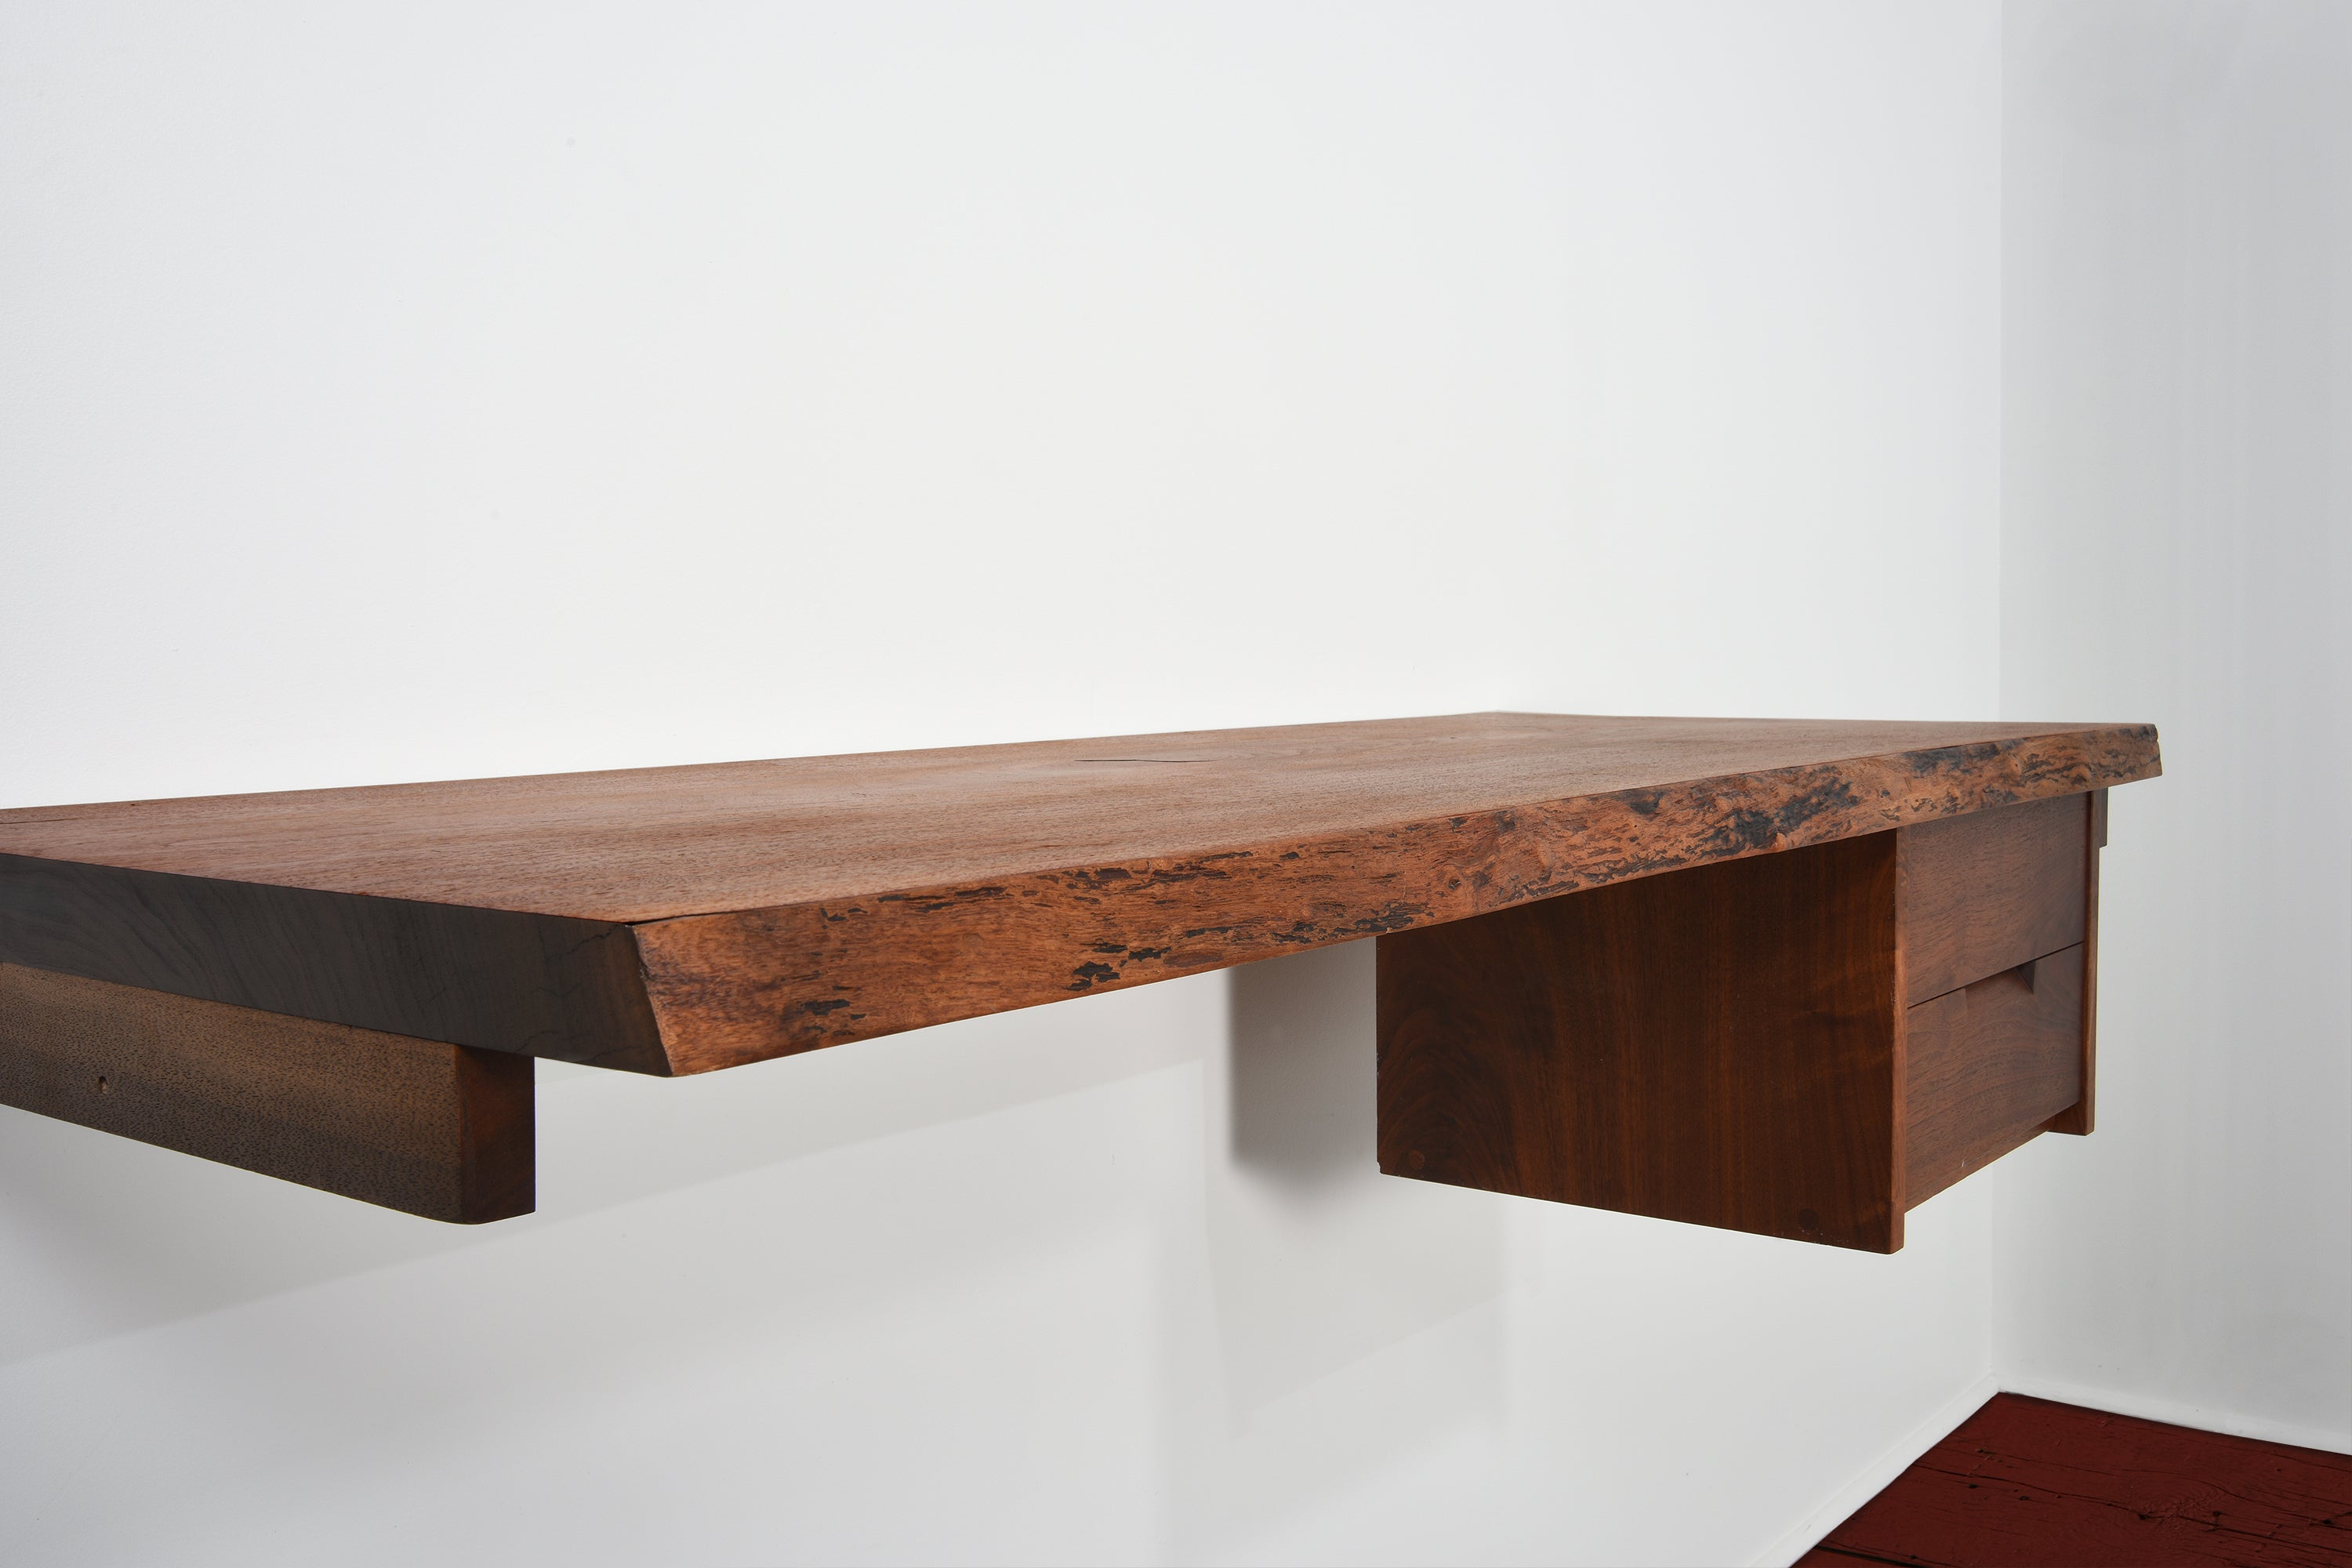 George Nakashima Desk/Shelf in Walnut with Two Drawers - The Exchange Int